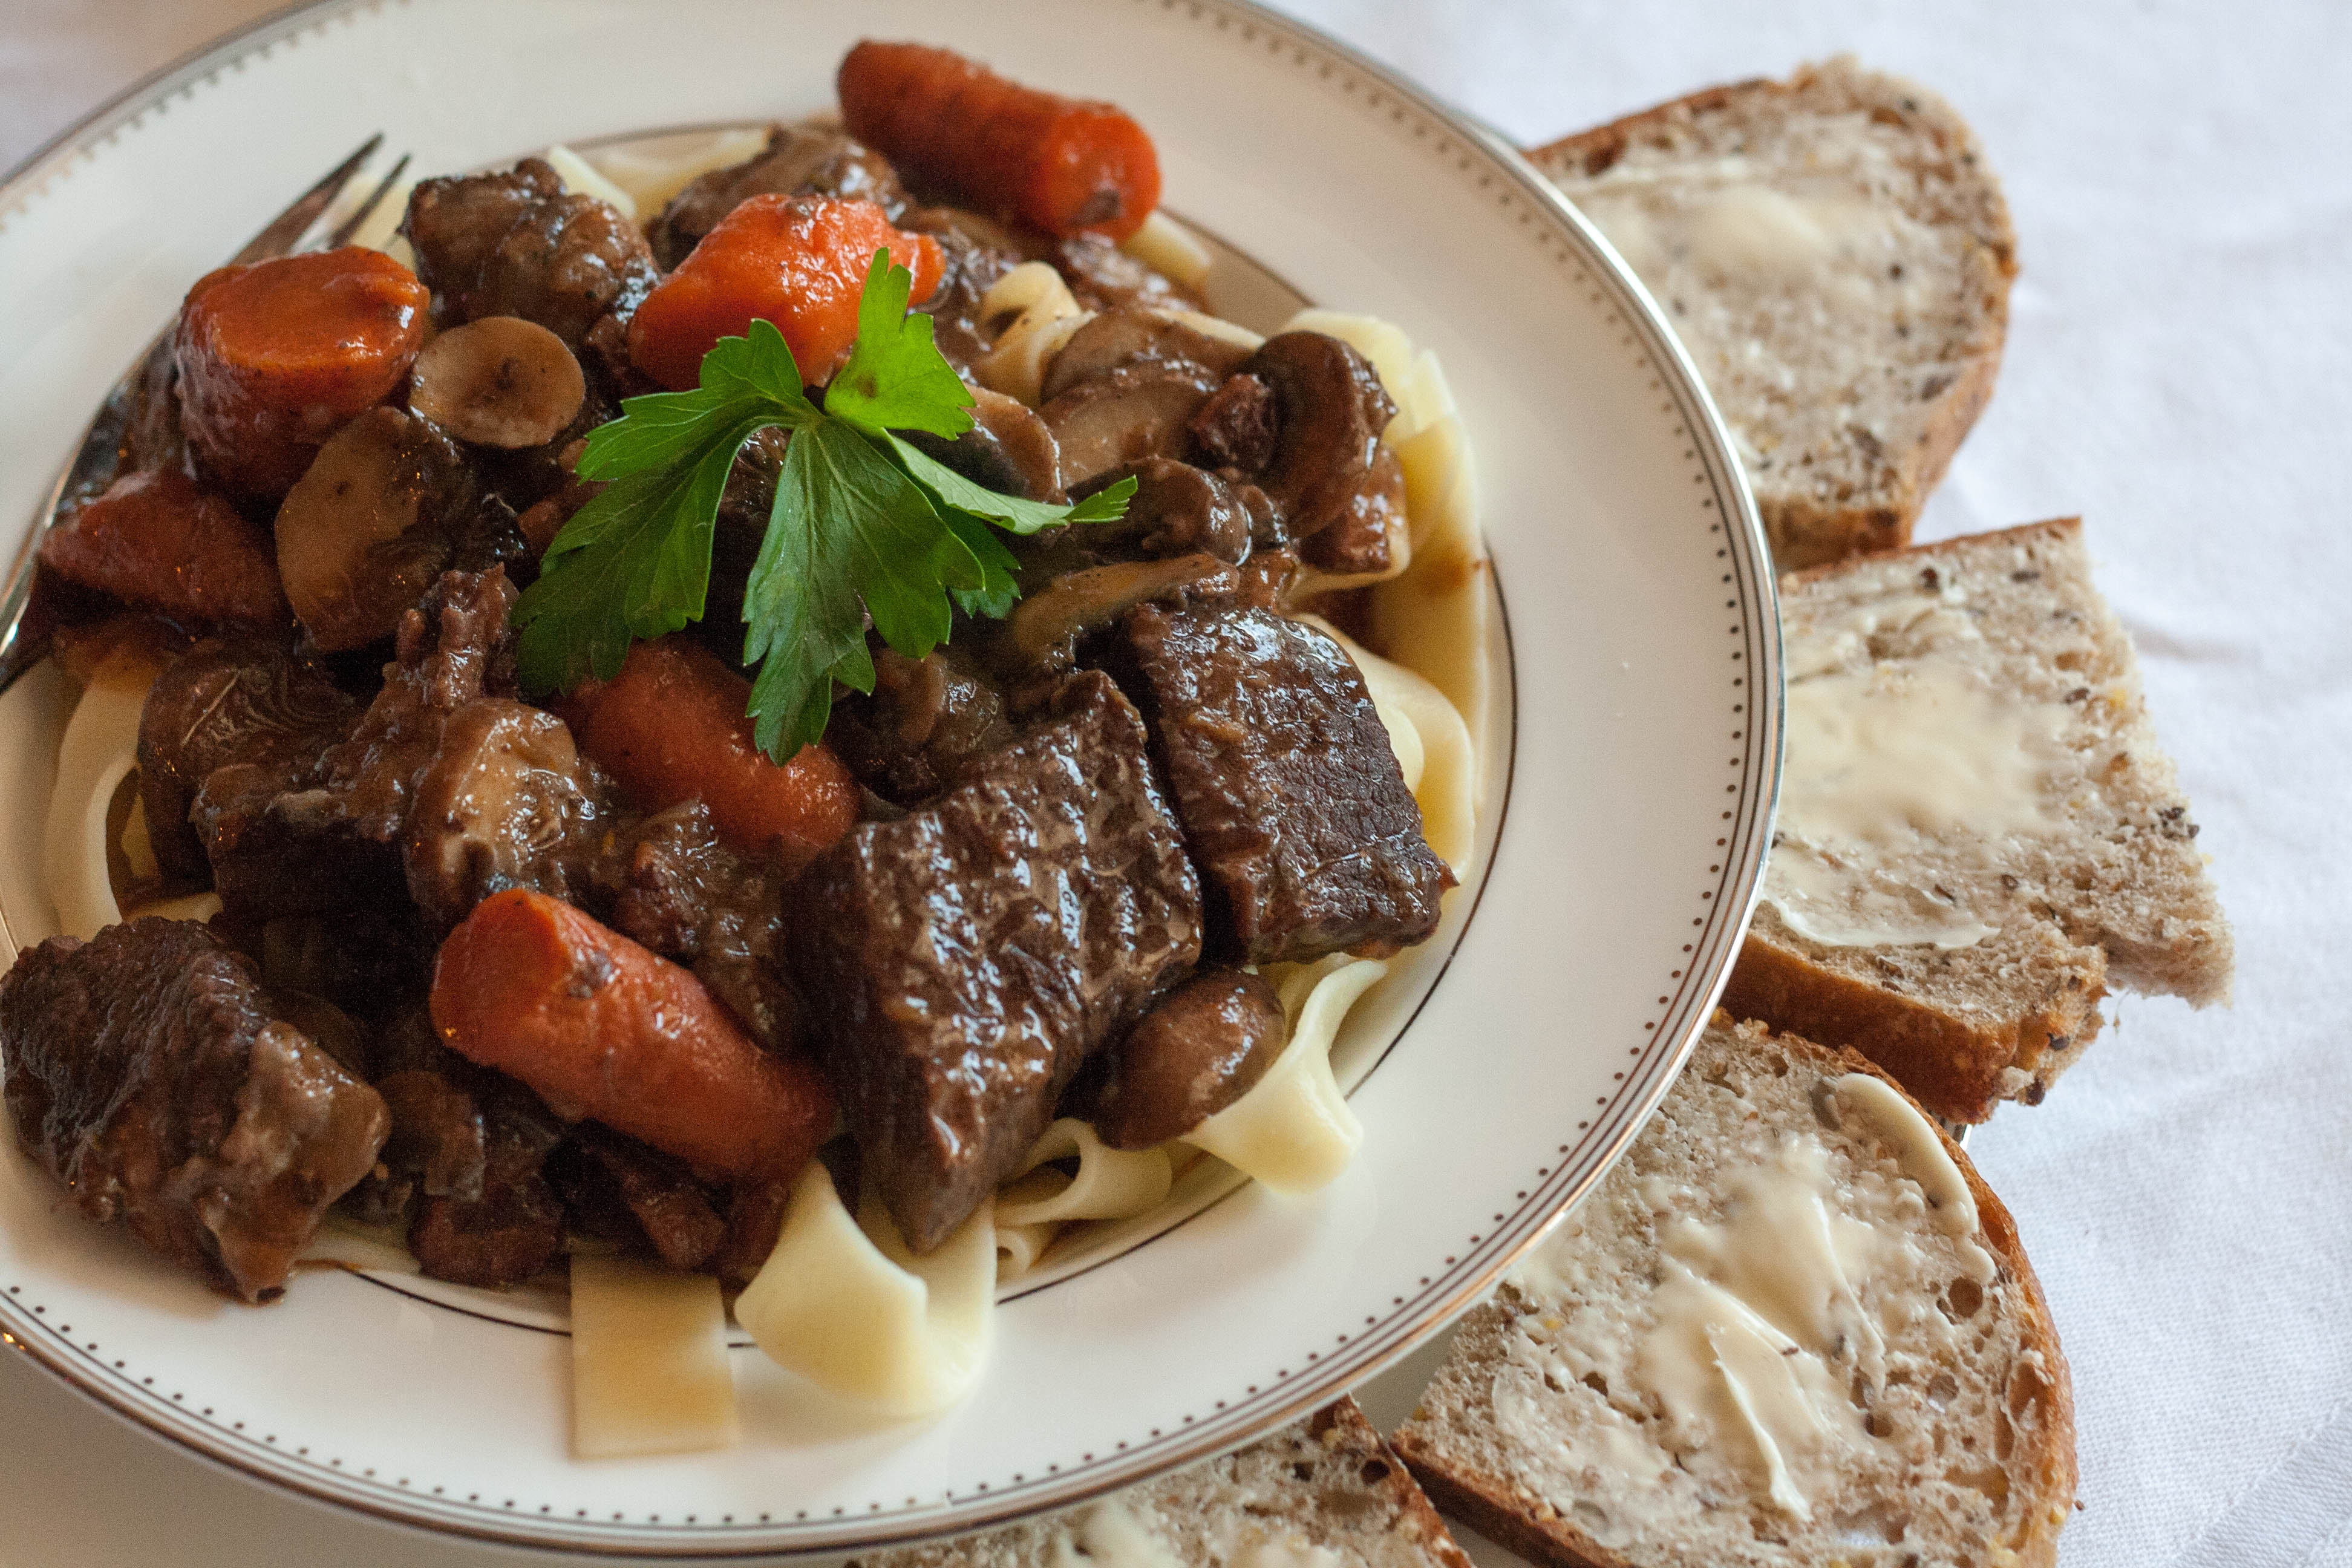 boeuf bourguinon with buttered bread